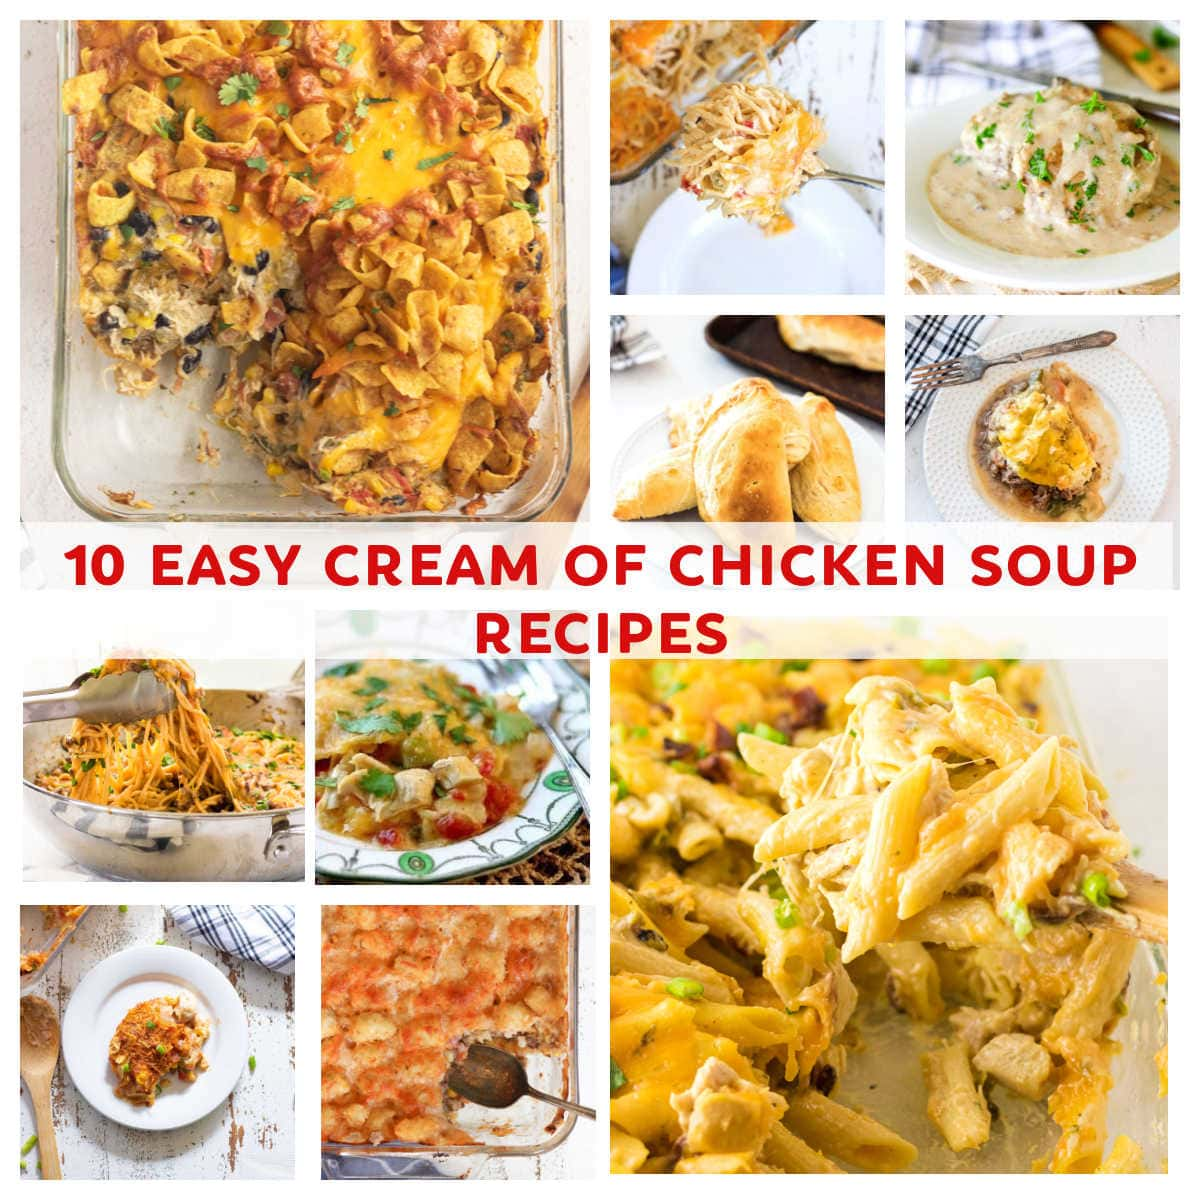 A collage of images illustrating the recipes in this post.